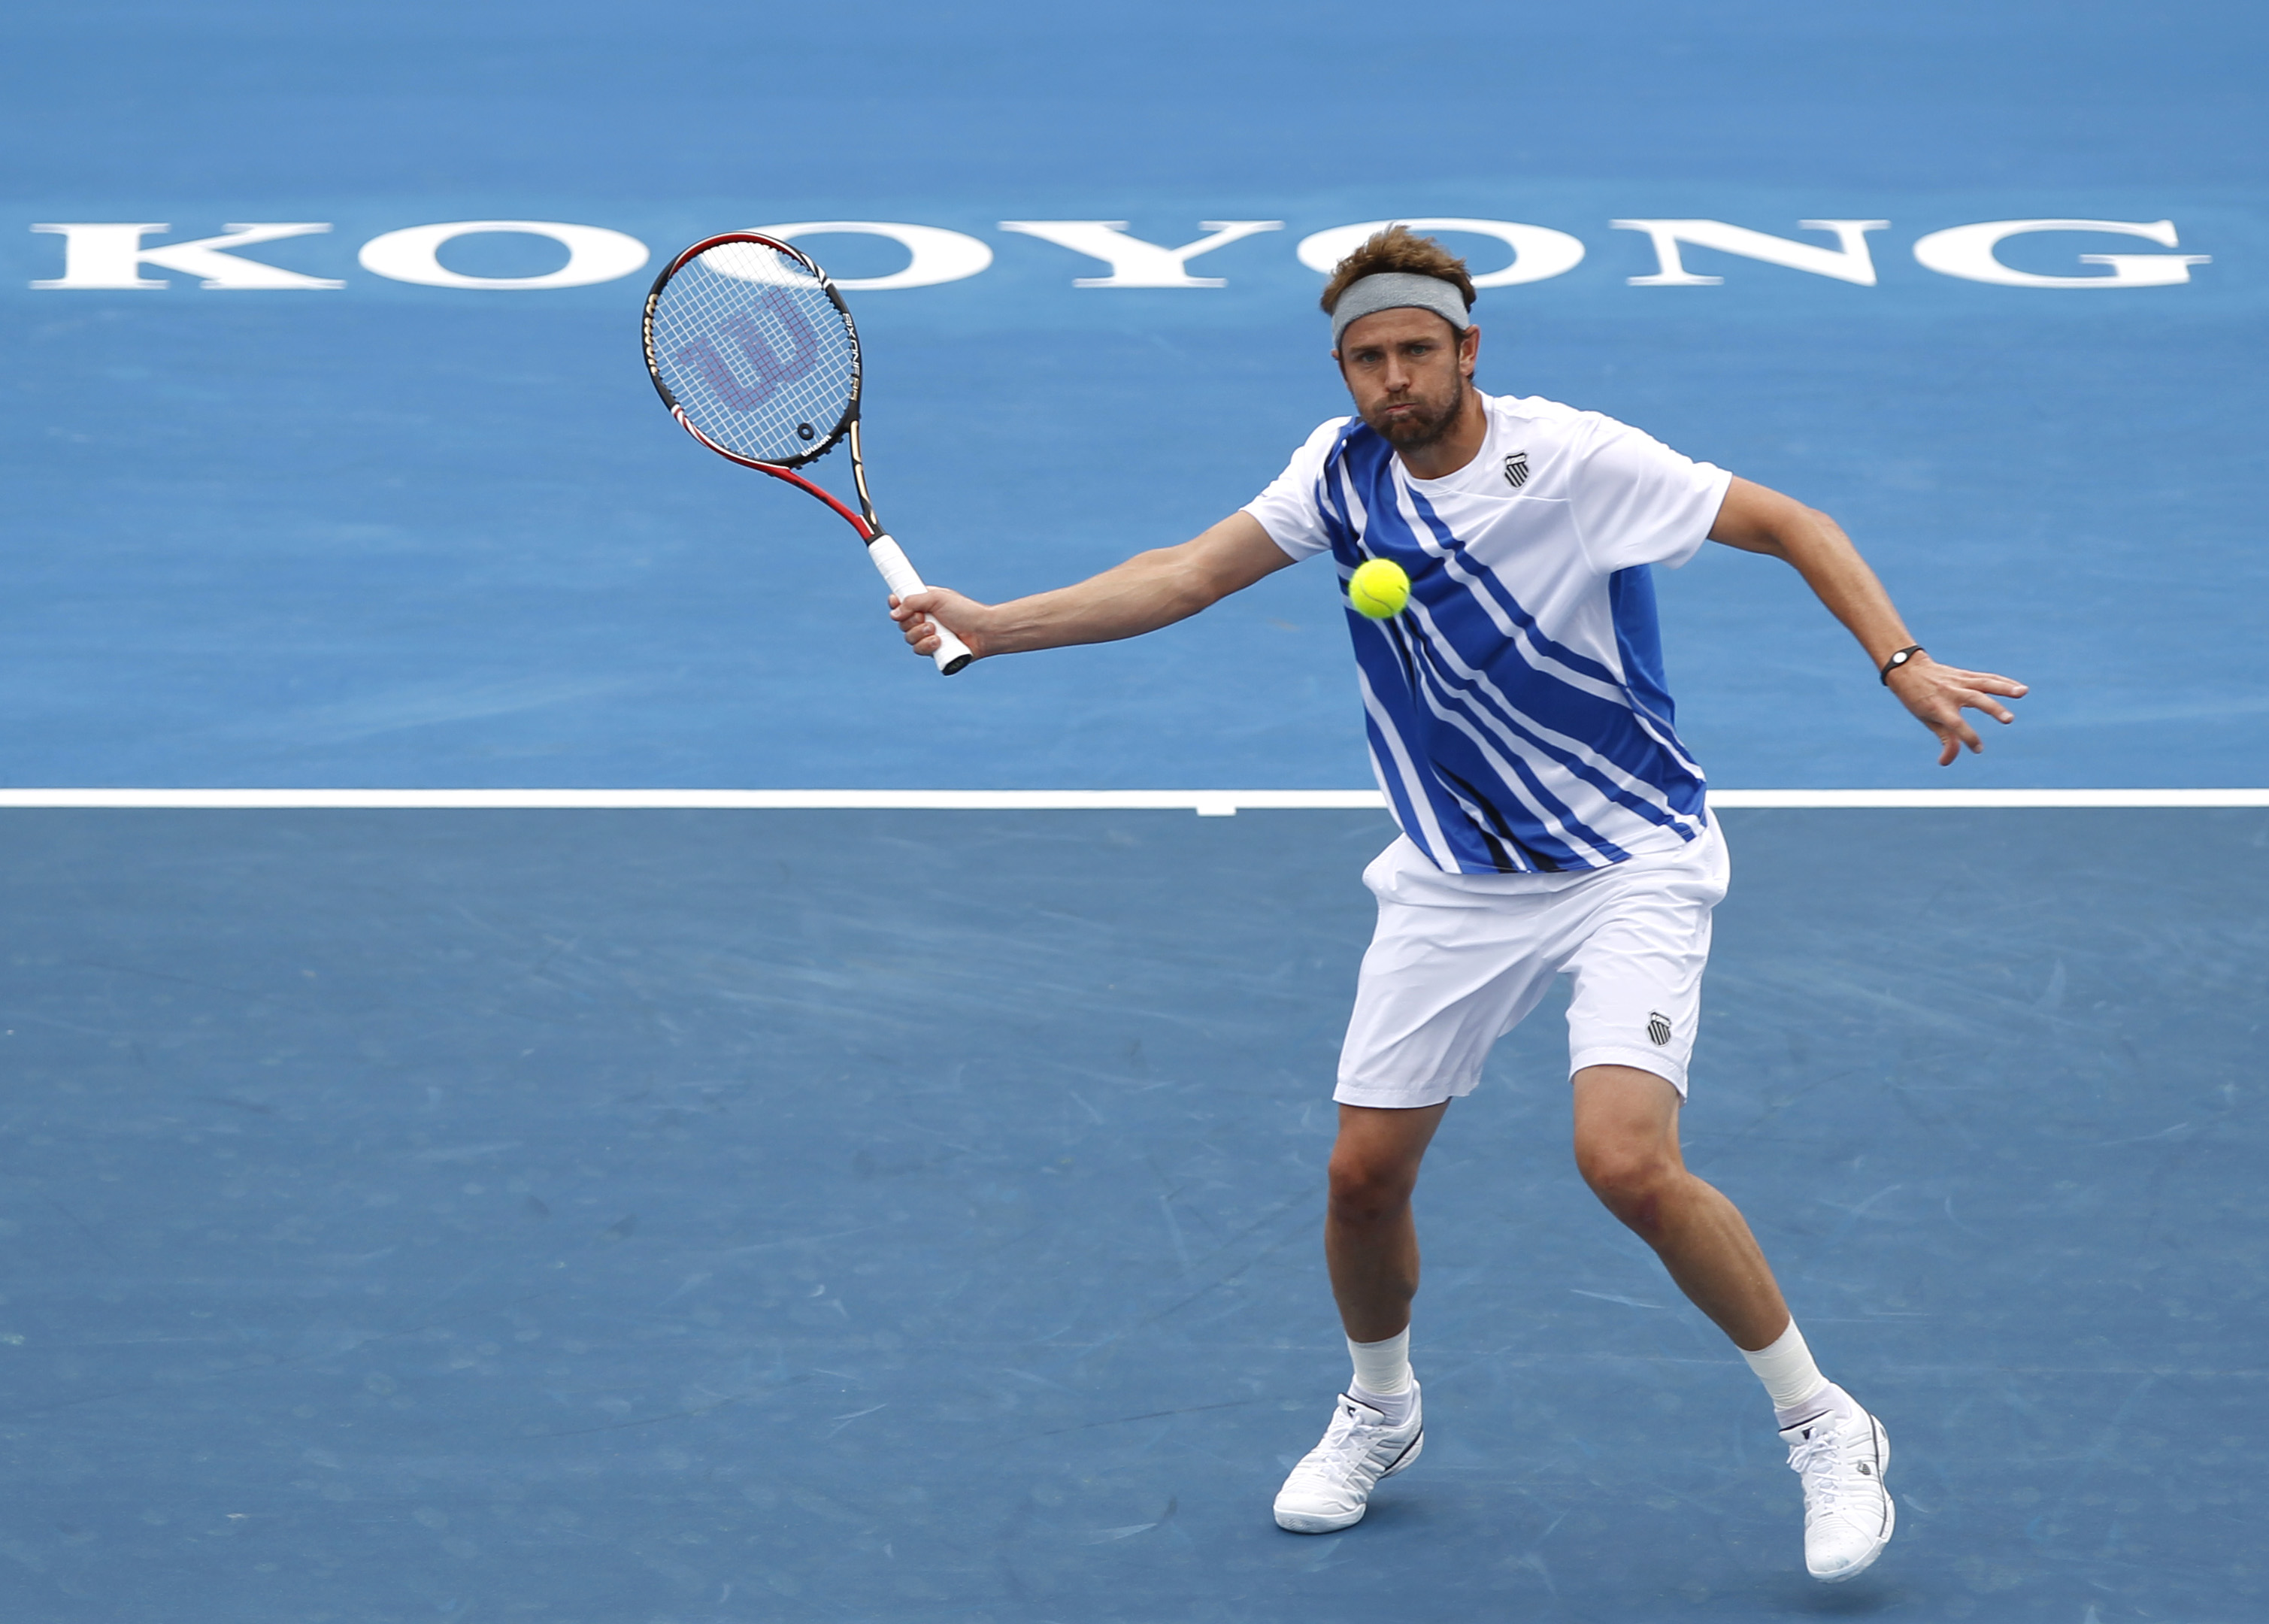 US tennis player Mardy Fish returns to  Bernard Tomic of Australia  in the final of the Kooyong Classic in Melbourne, Australia, Saturday, Jan. 14, 2012. (AP Photo/Shuji Kajiyama)